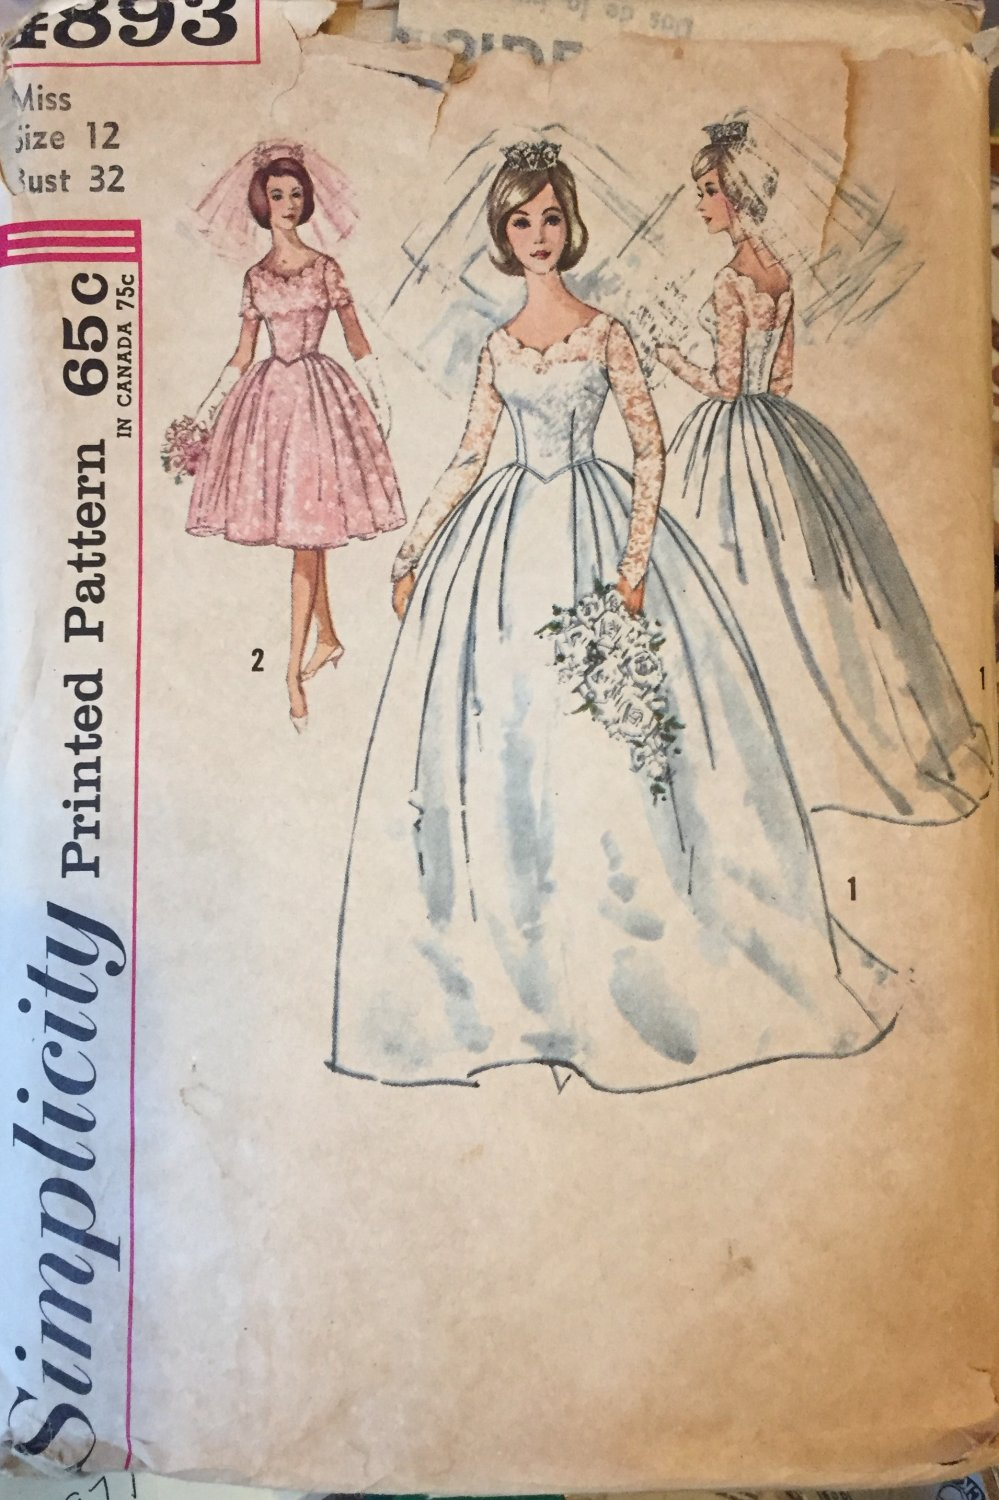 """1960's Simplicity 4893 Wedding Gown Sewing Pattern Size 12 bust 32"""""""